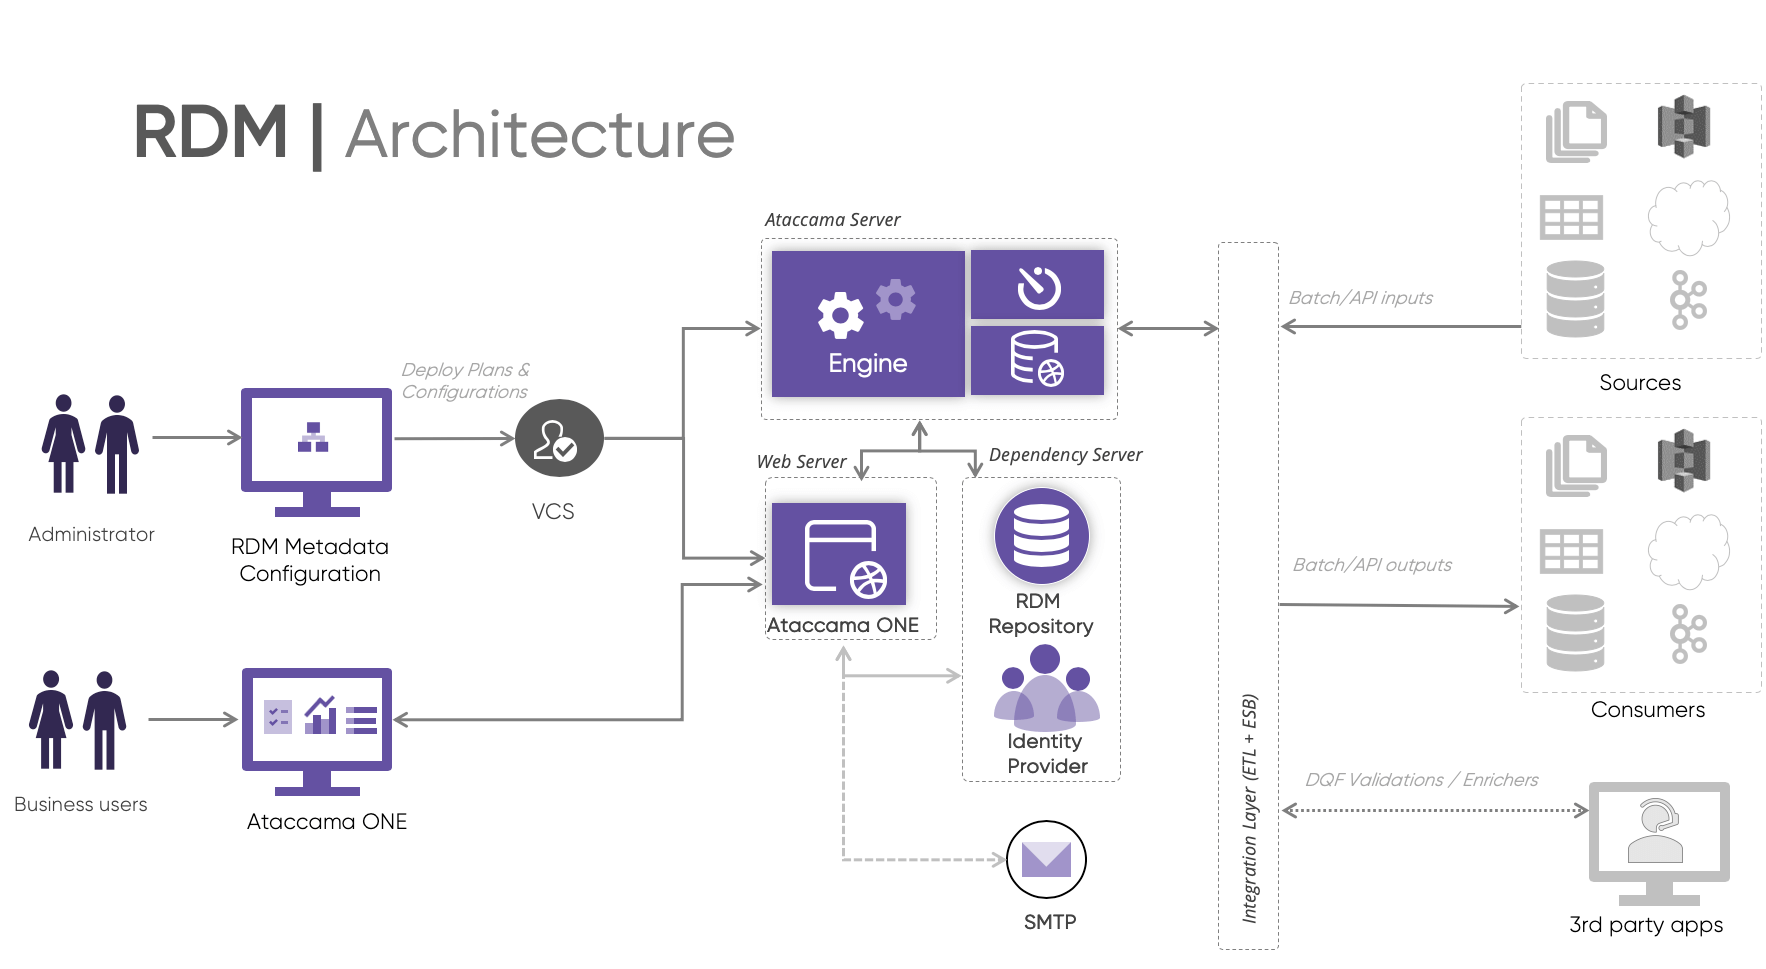 Proposed solution (RDM architecture)